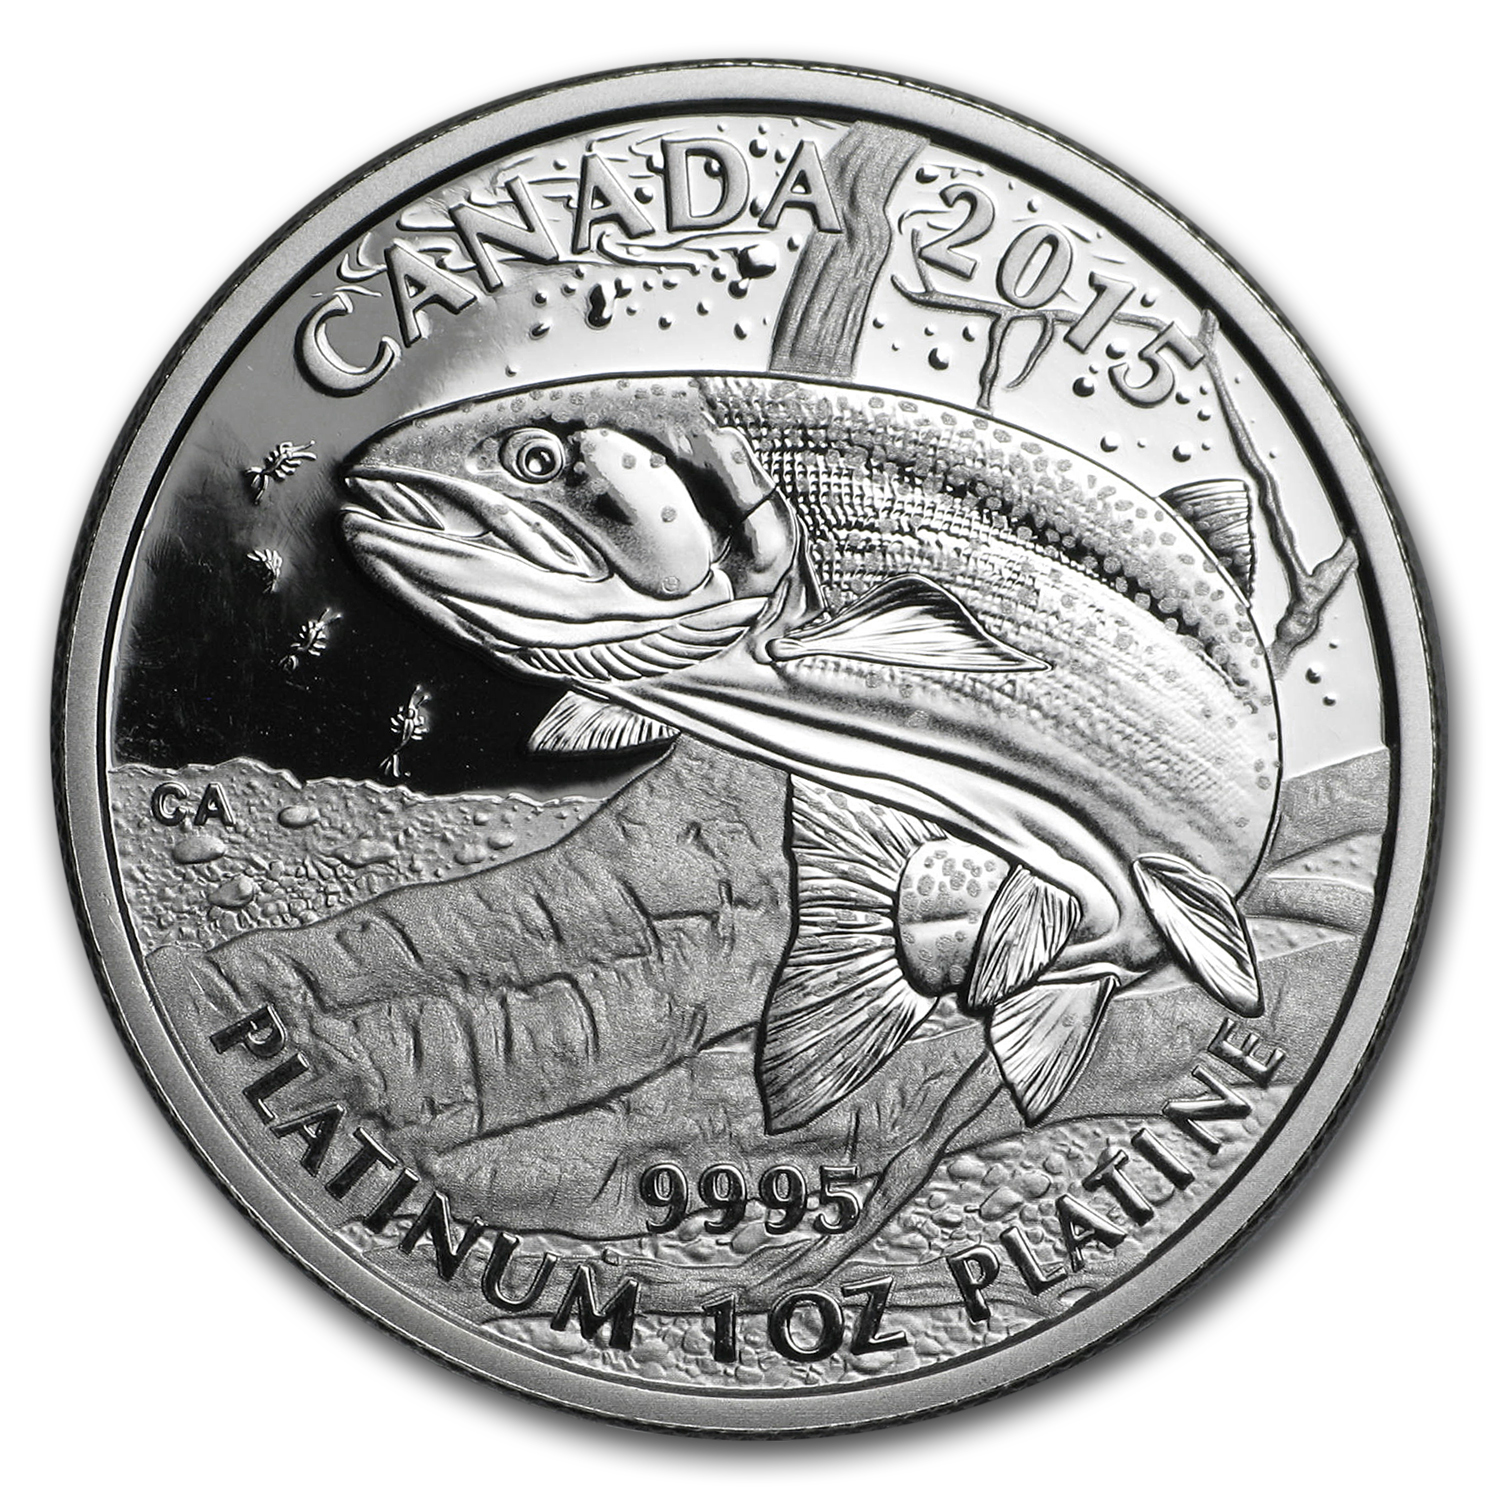 2015 Canada 1 oz Proof Platinum $300 Rainbow Trout